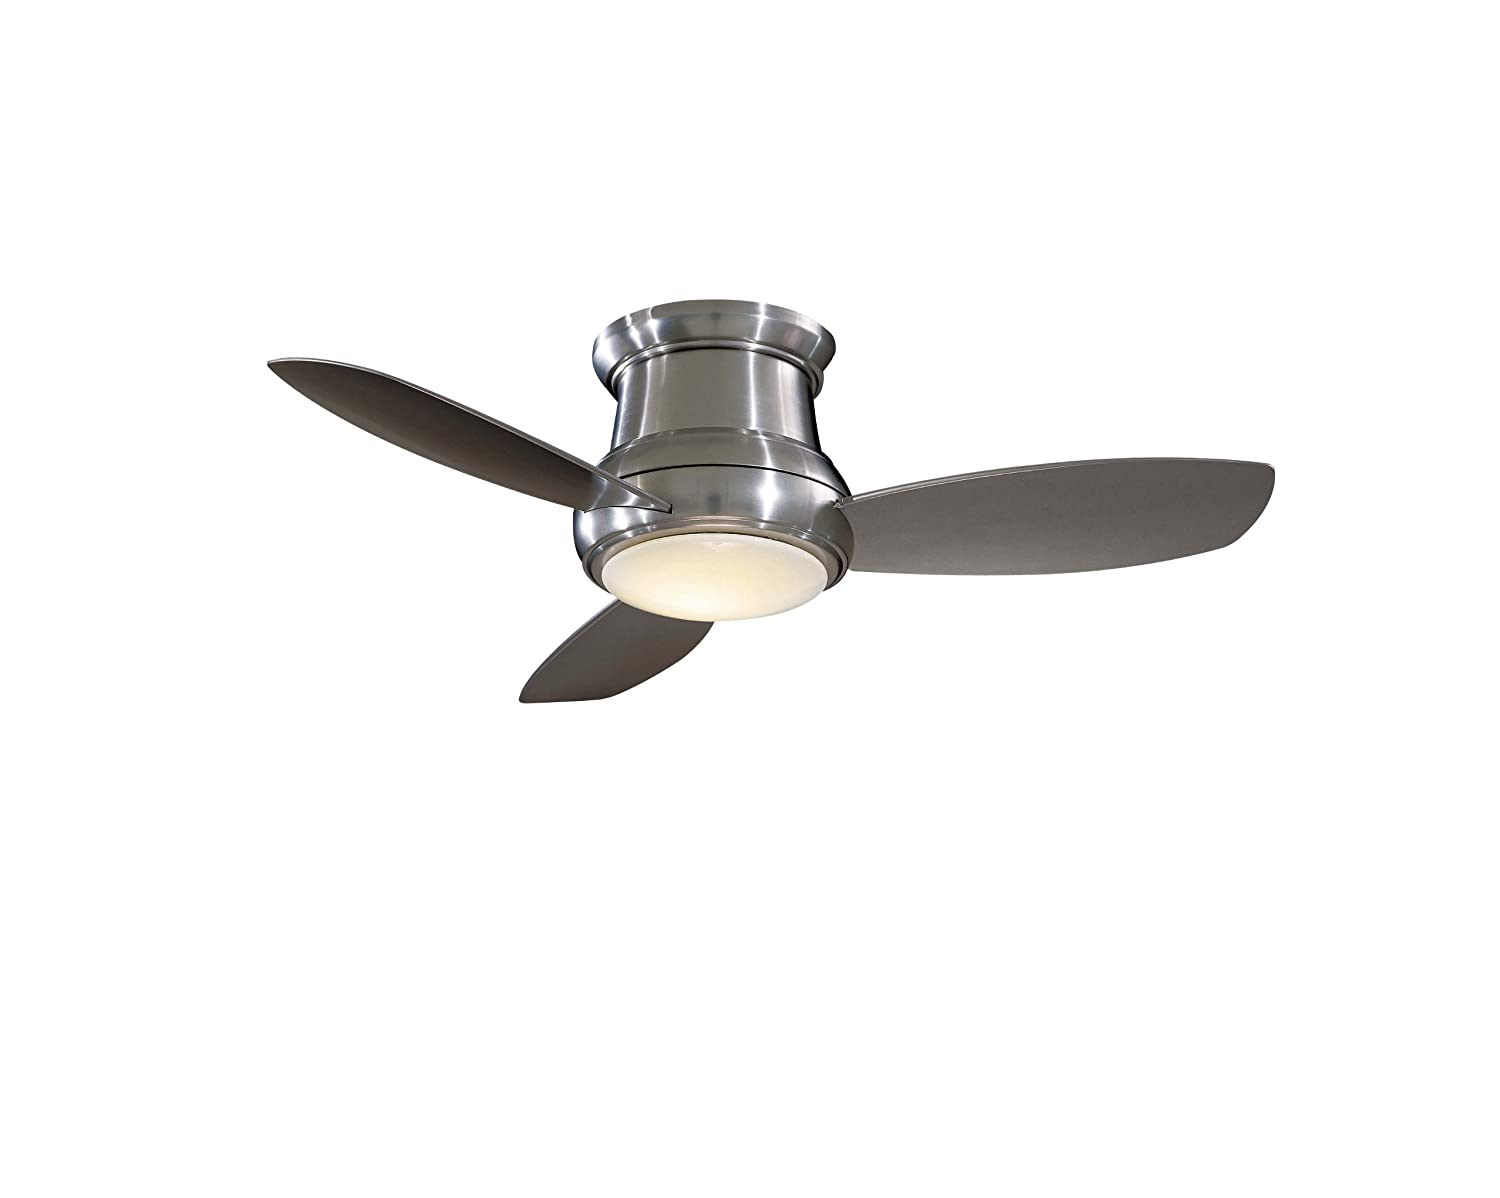 fan ceiling aluminium brushed light led inch with product fias rotor lighting silver